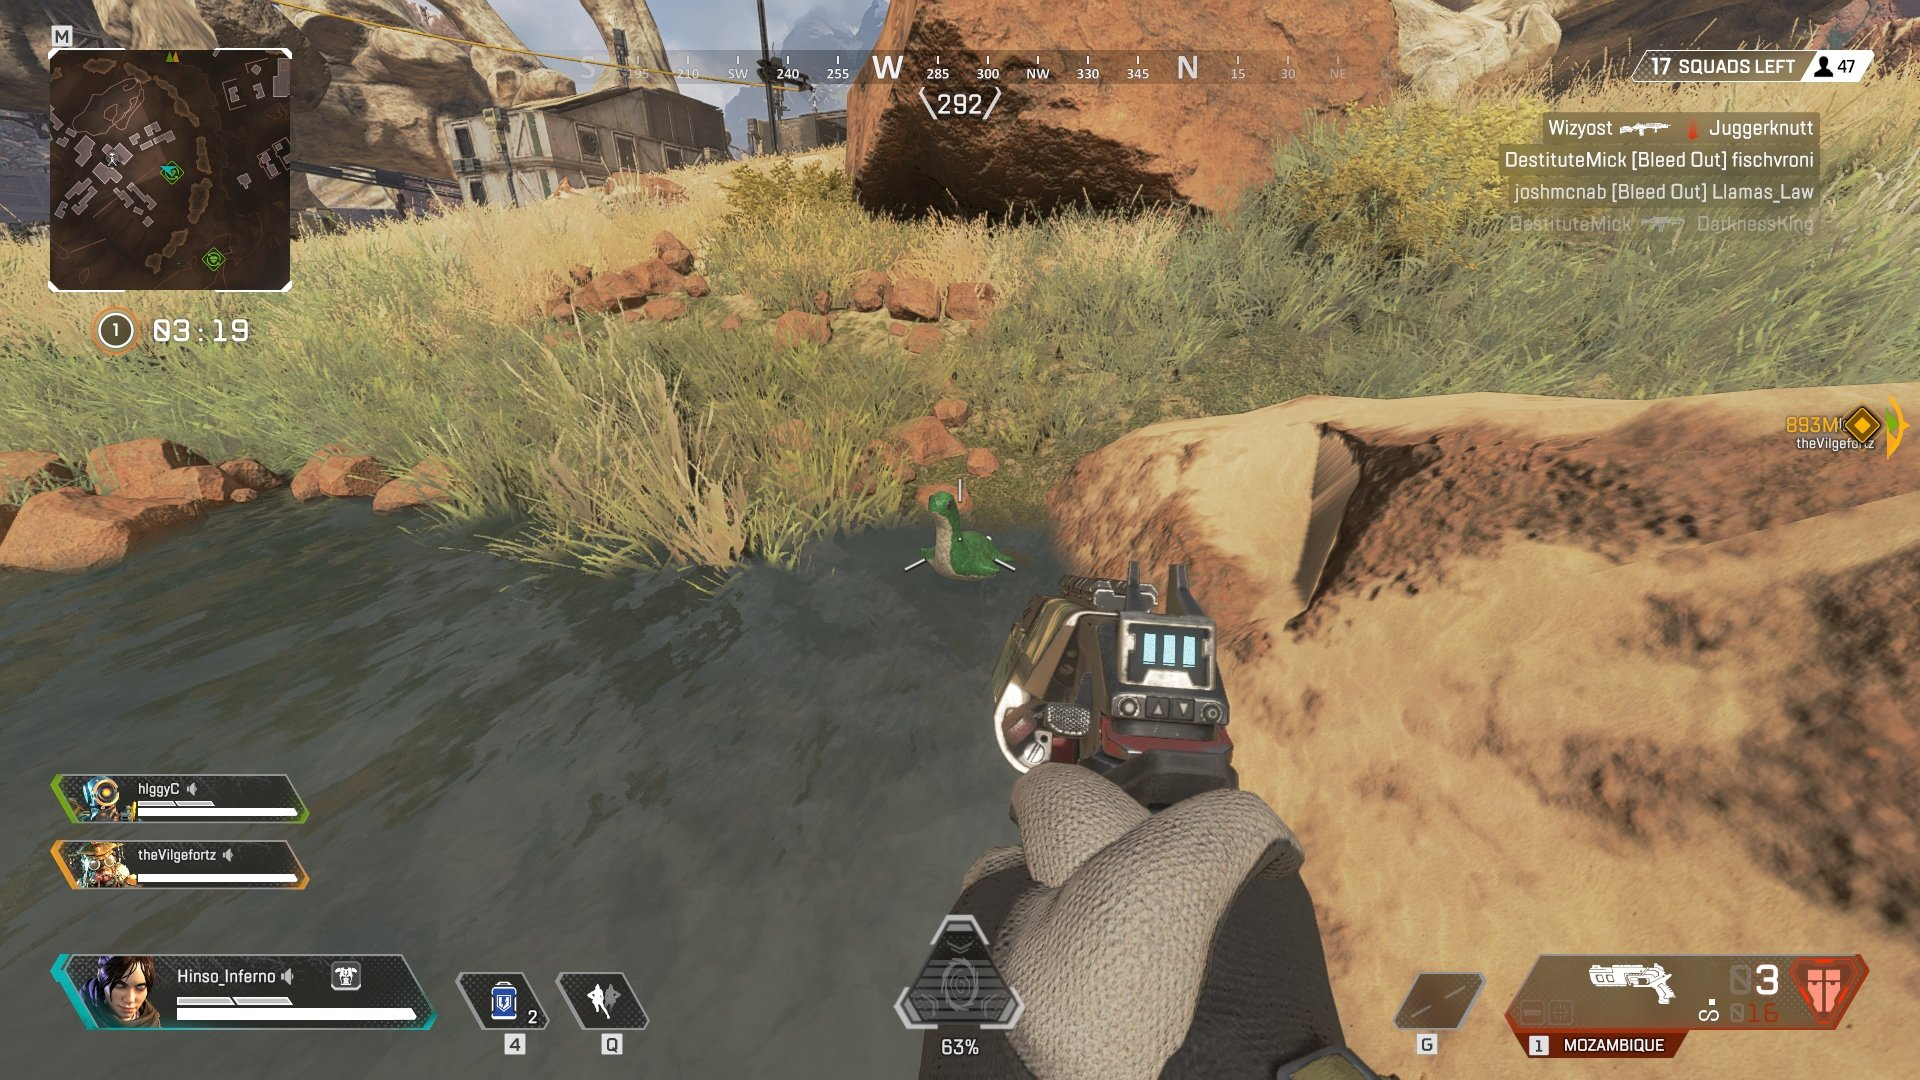 How to solve the Nessy Easter Egg challenge in Apex Legends